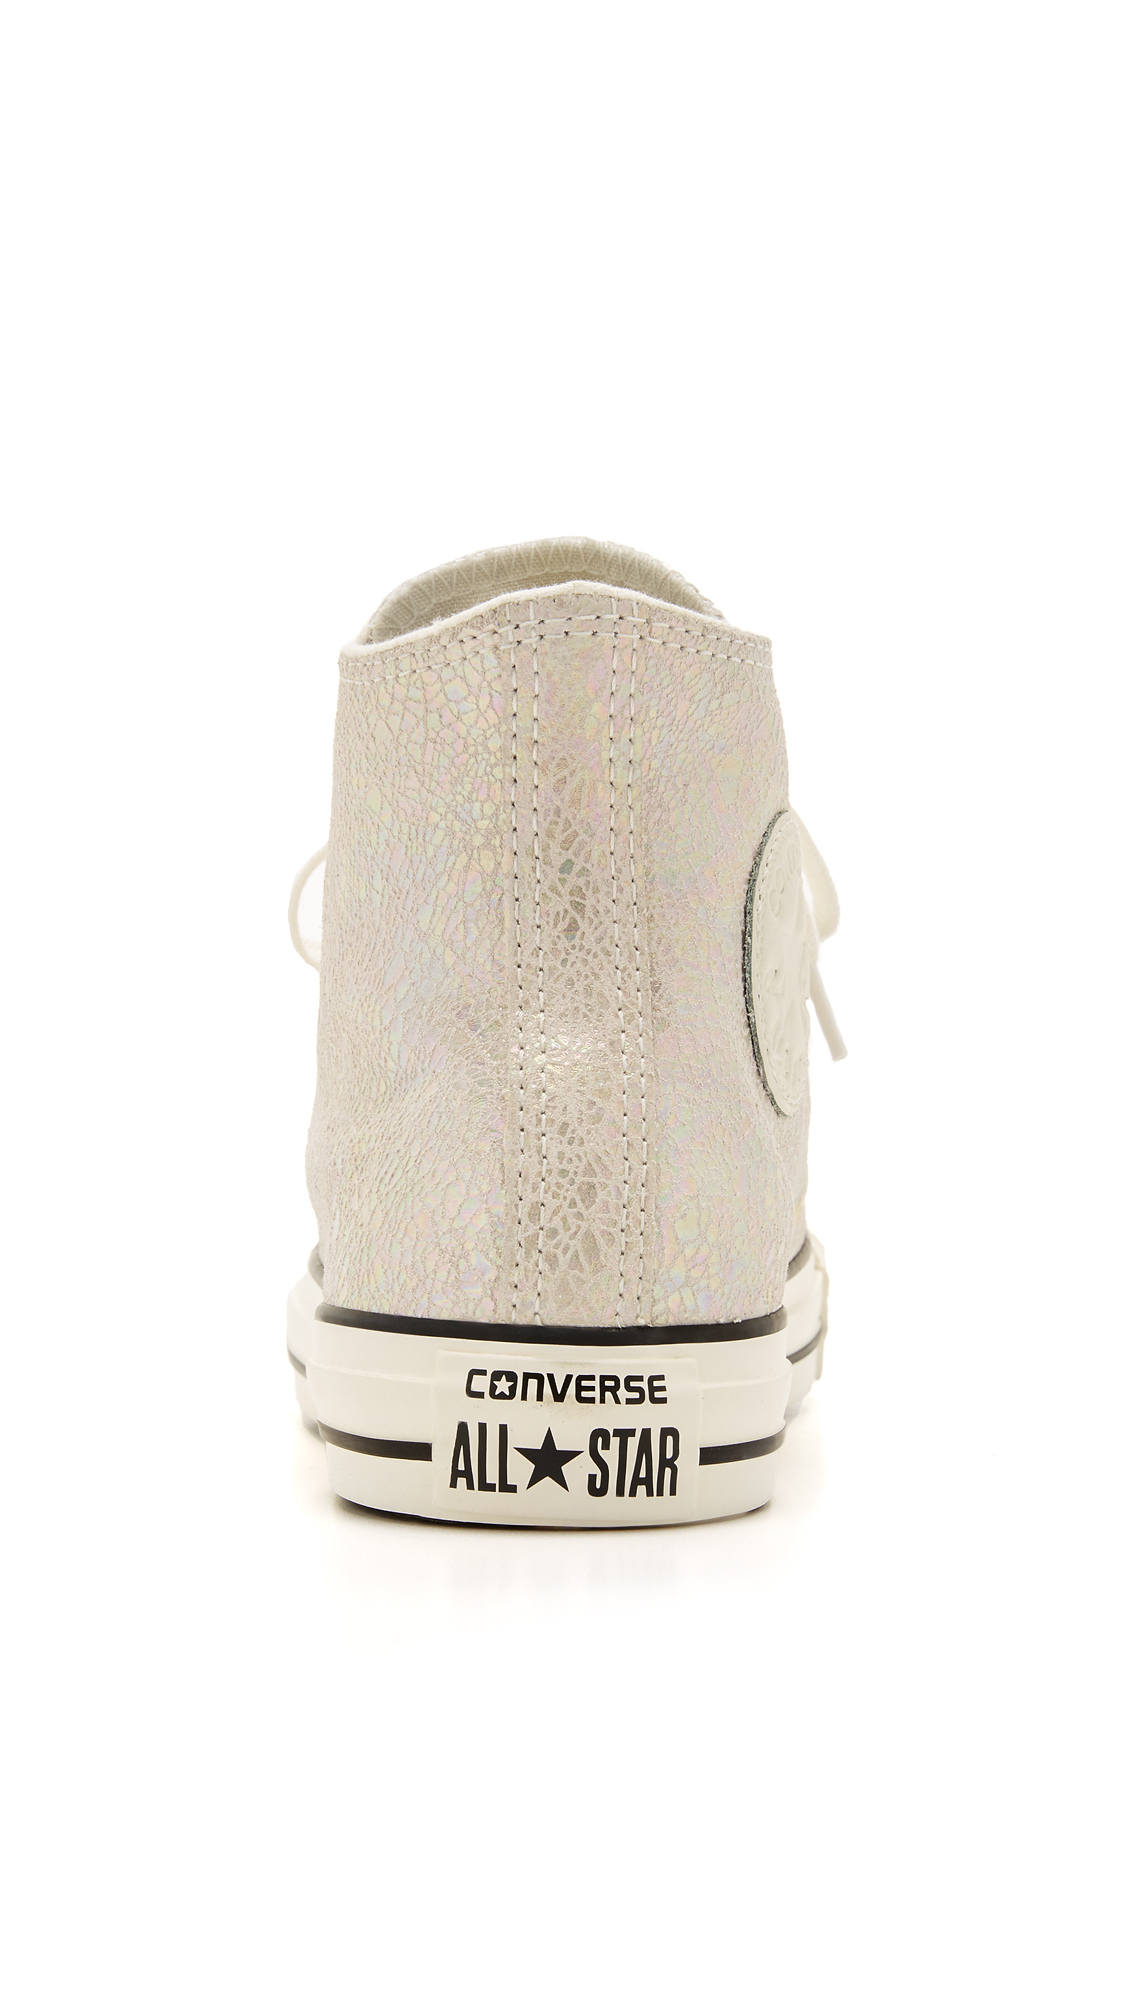 Converse Chuck Taylor All Star Oil Slick Sneakers in Natural